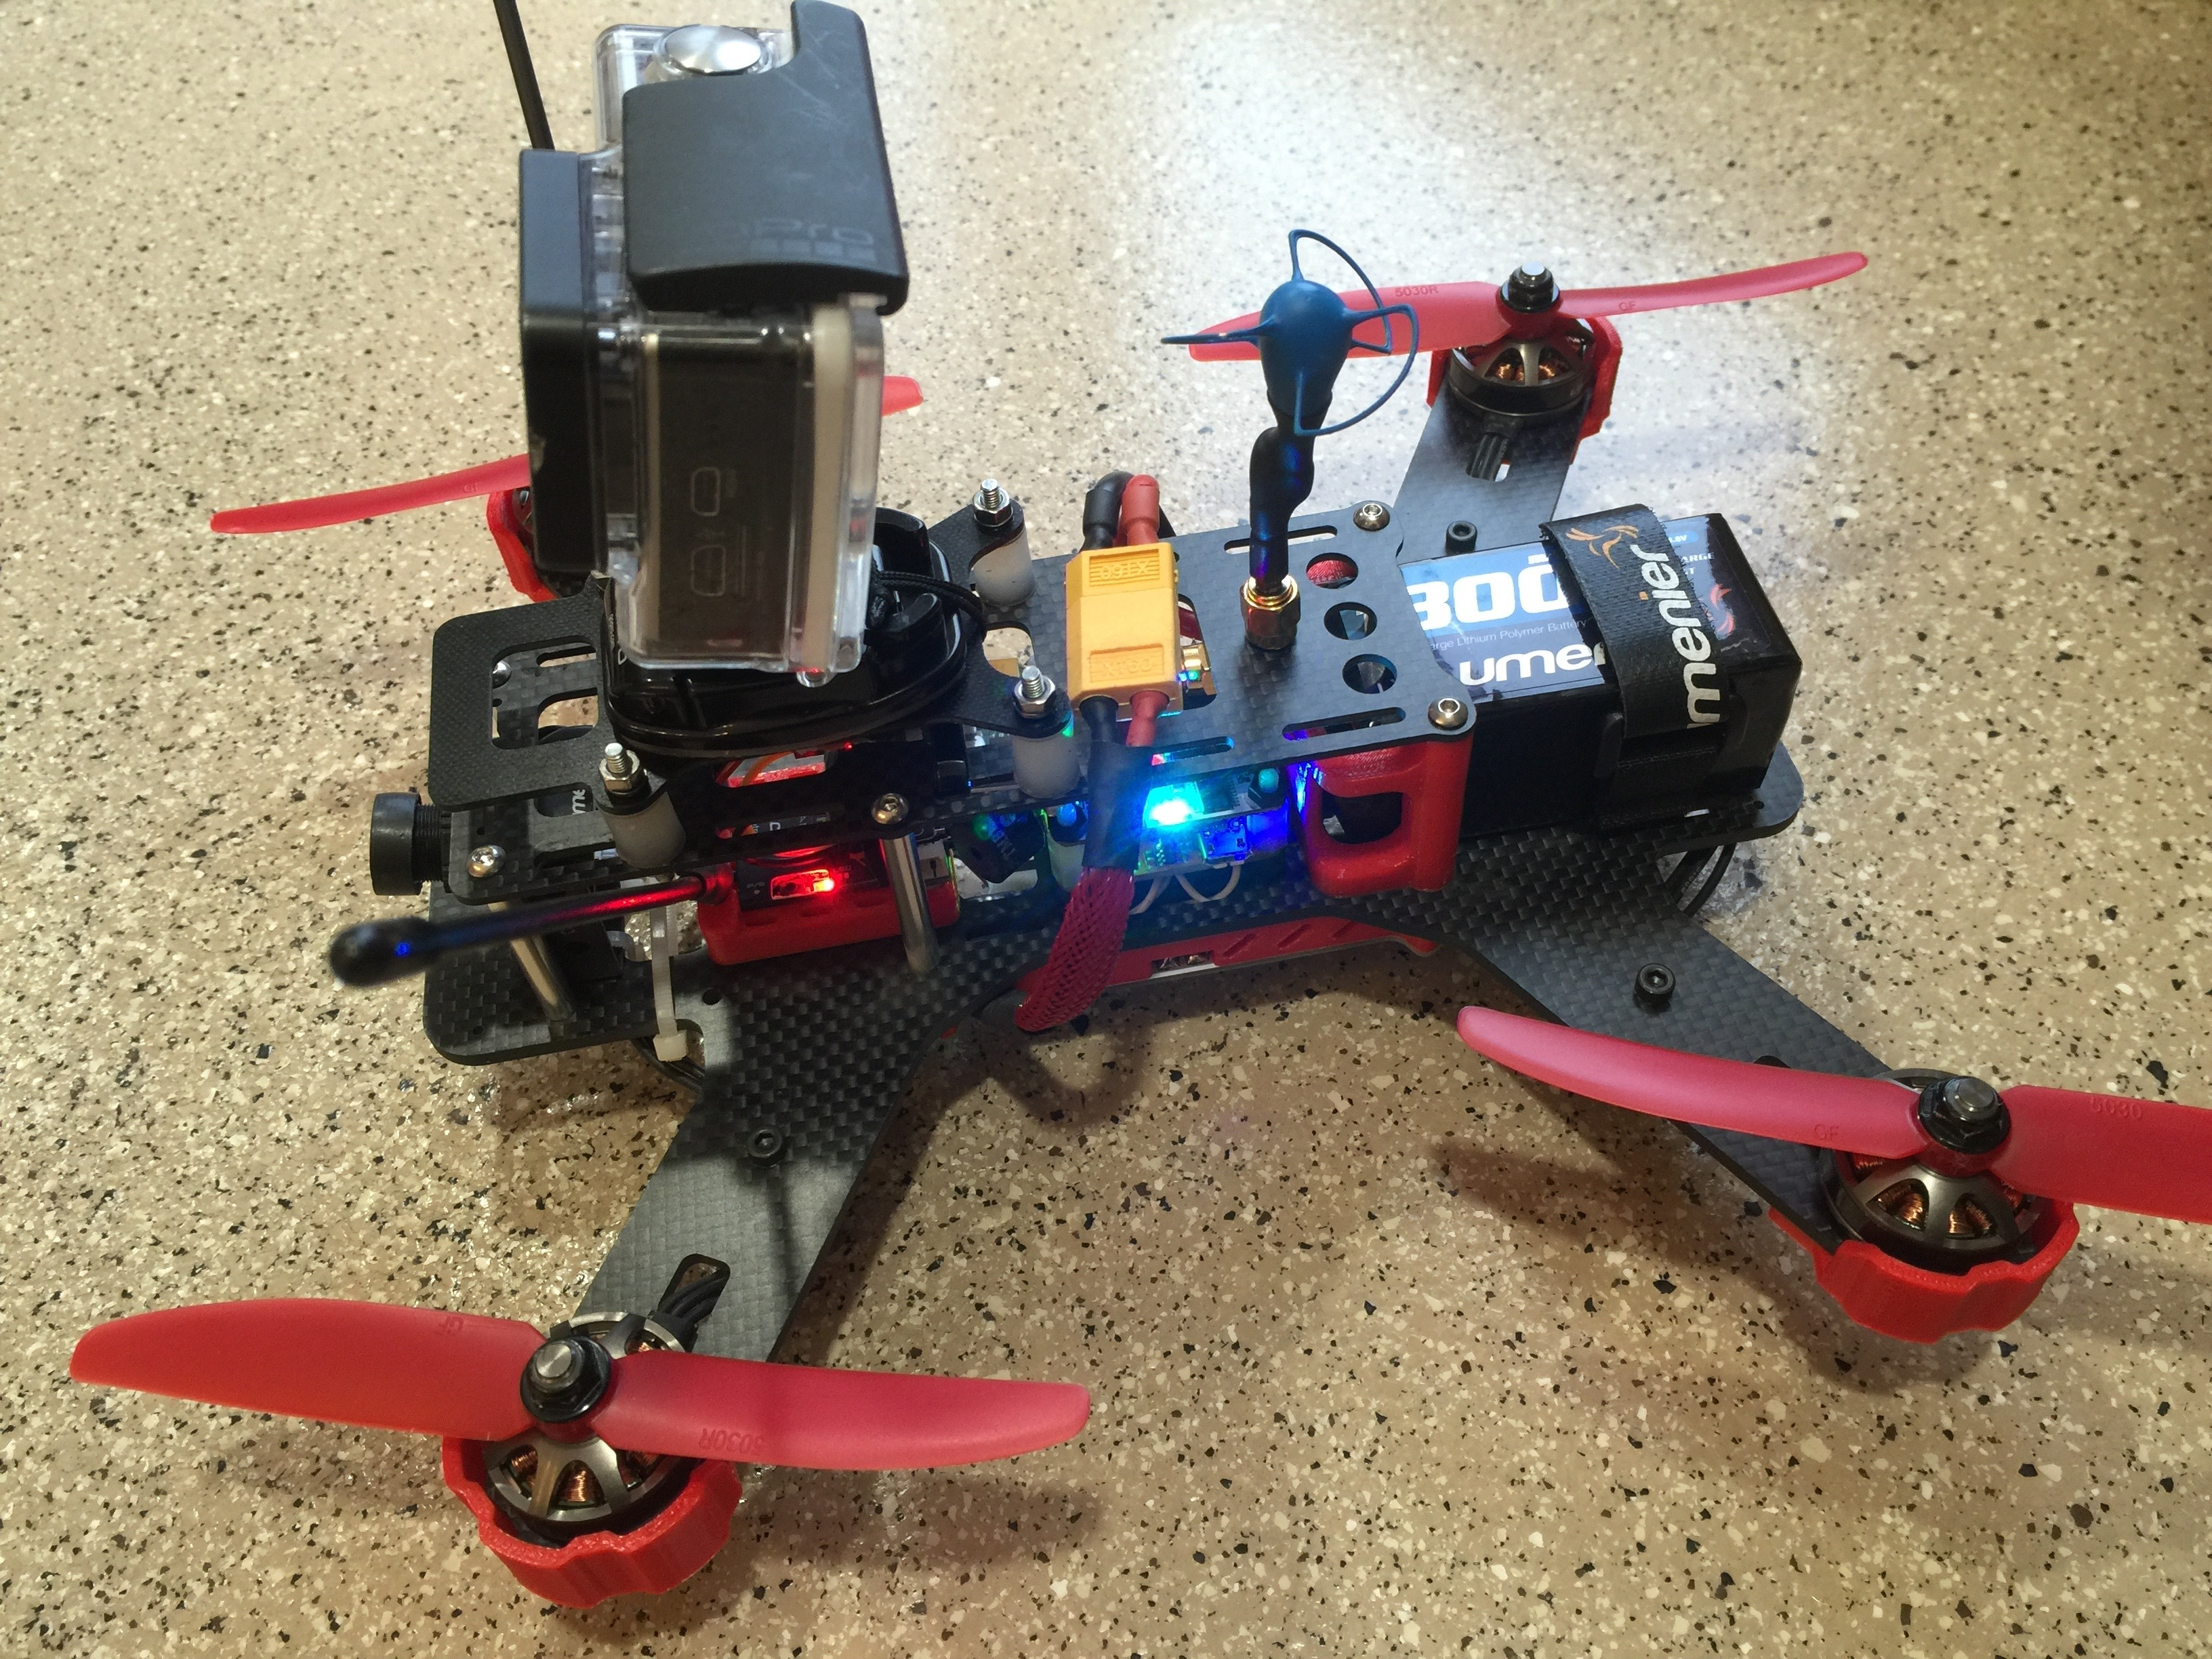 qav250 quadcopter built and repaired w ifixit tools. Black Bedroom Furniture Sets. Home Design Ideas